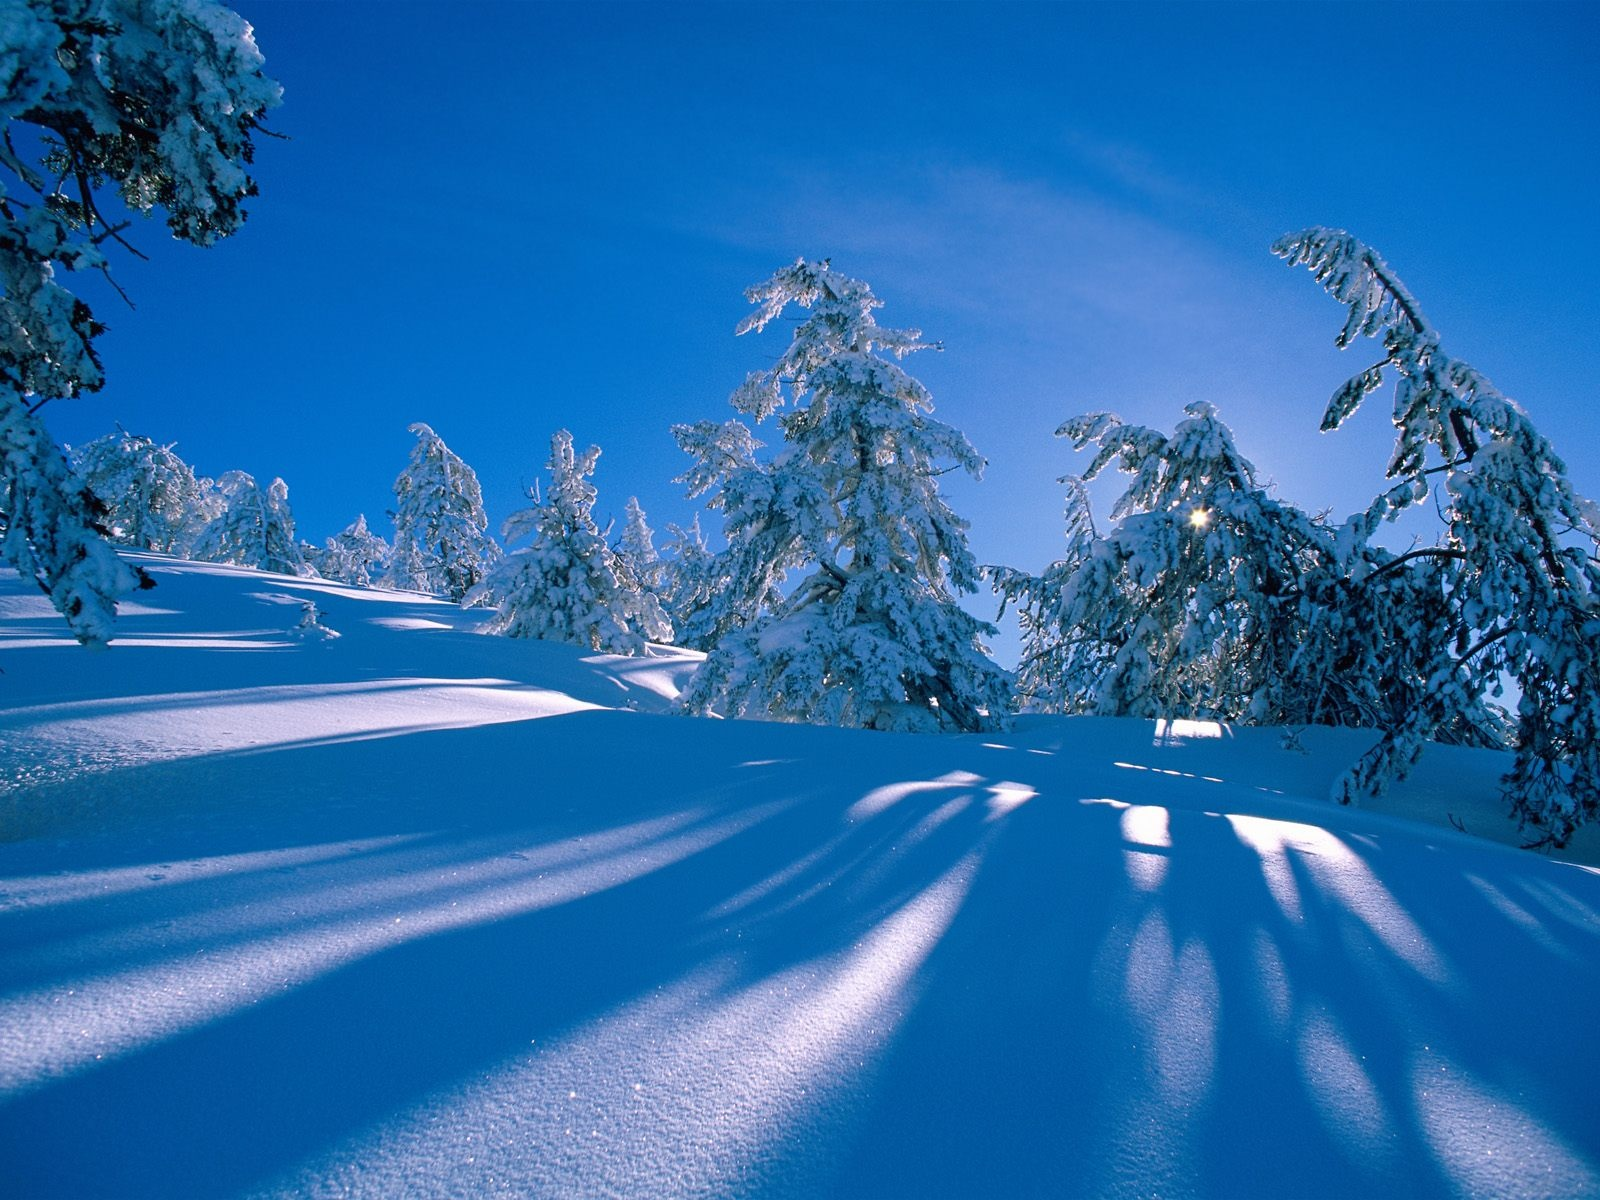 wallpapers hd winter saying pictures